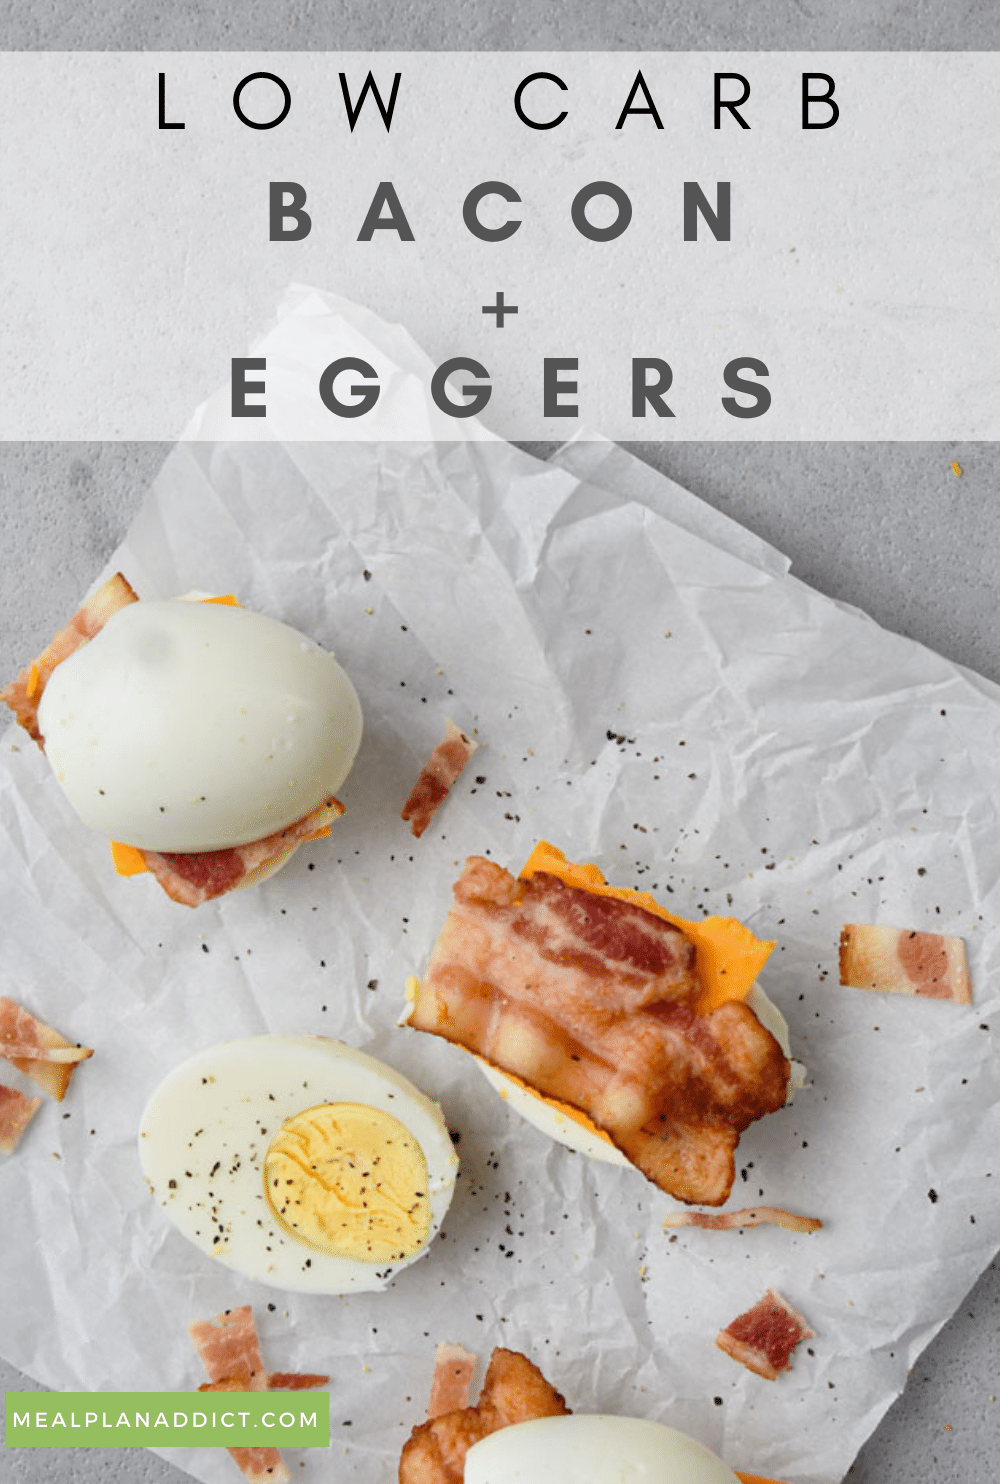 Bacon and eggers pin for Pinterest